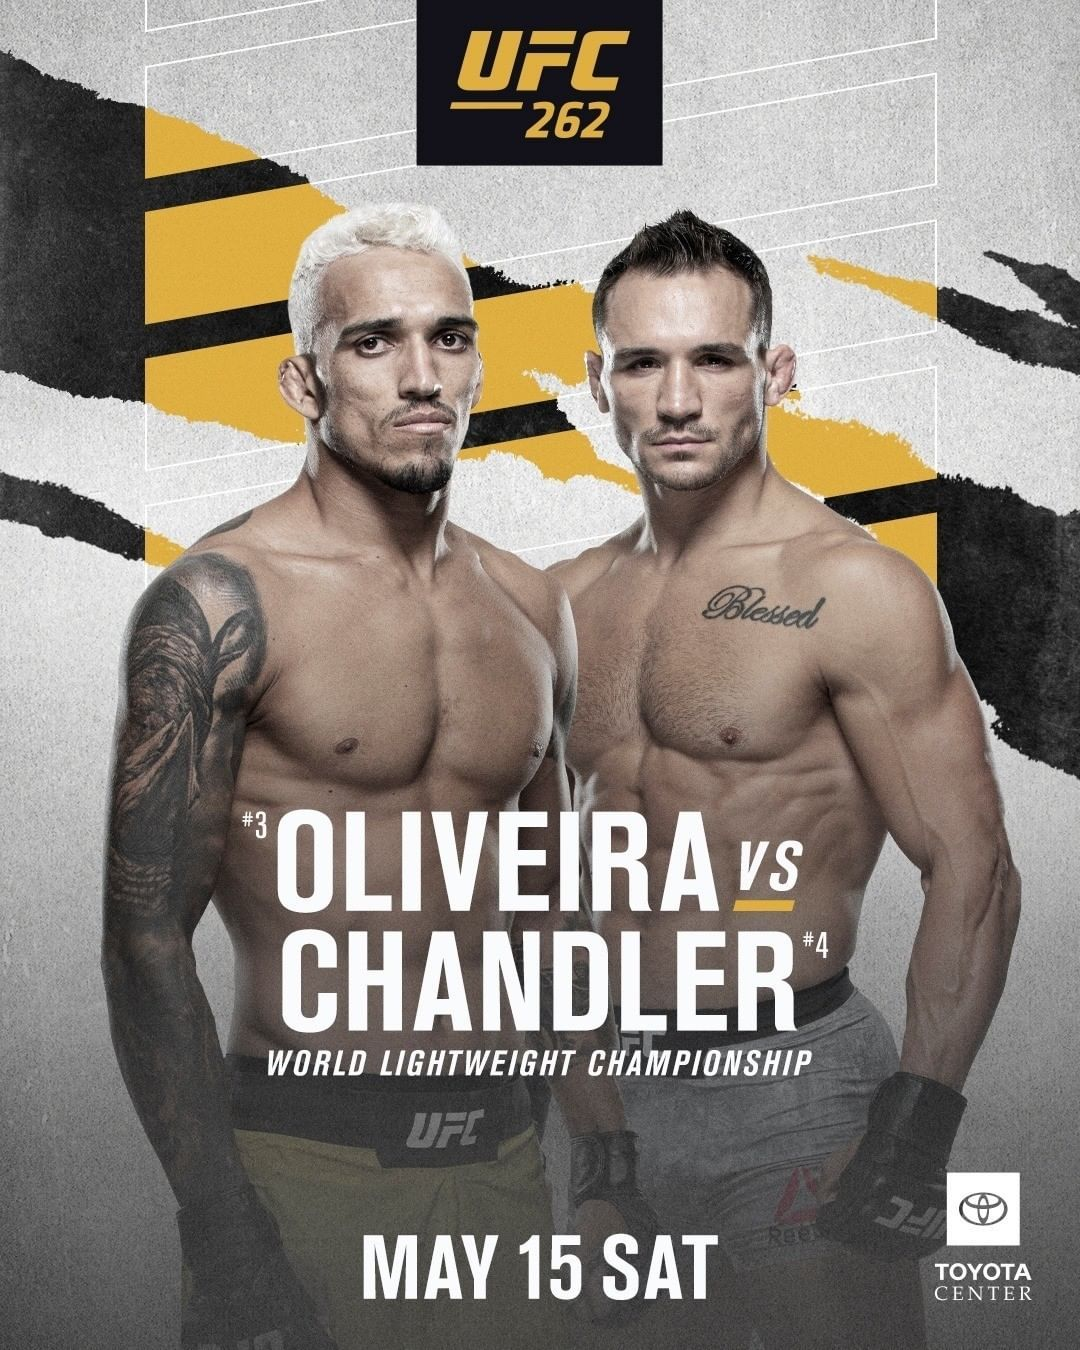 Charles Oliveira vs Michael Chandler